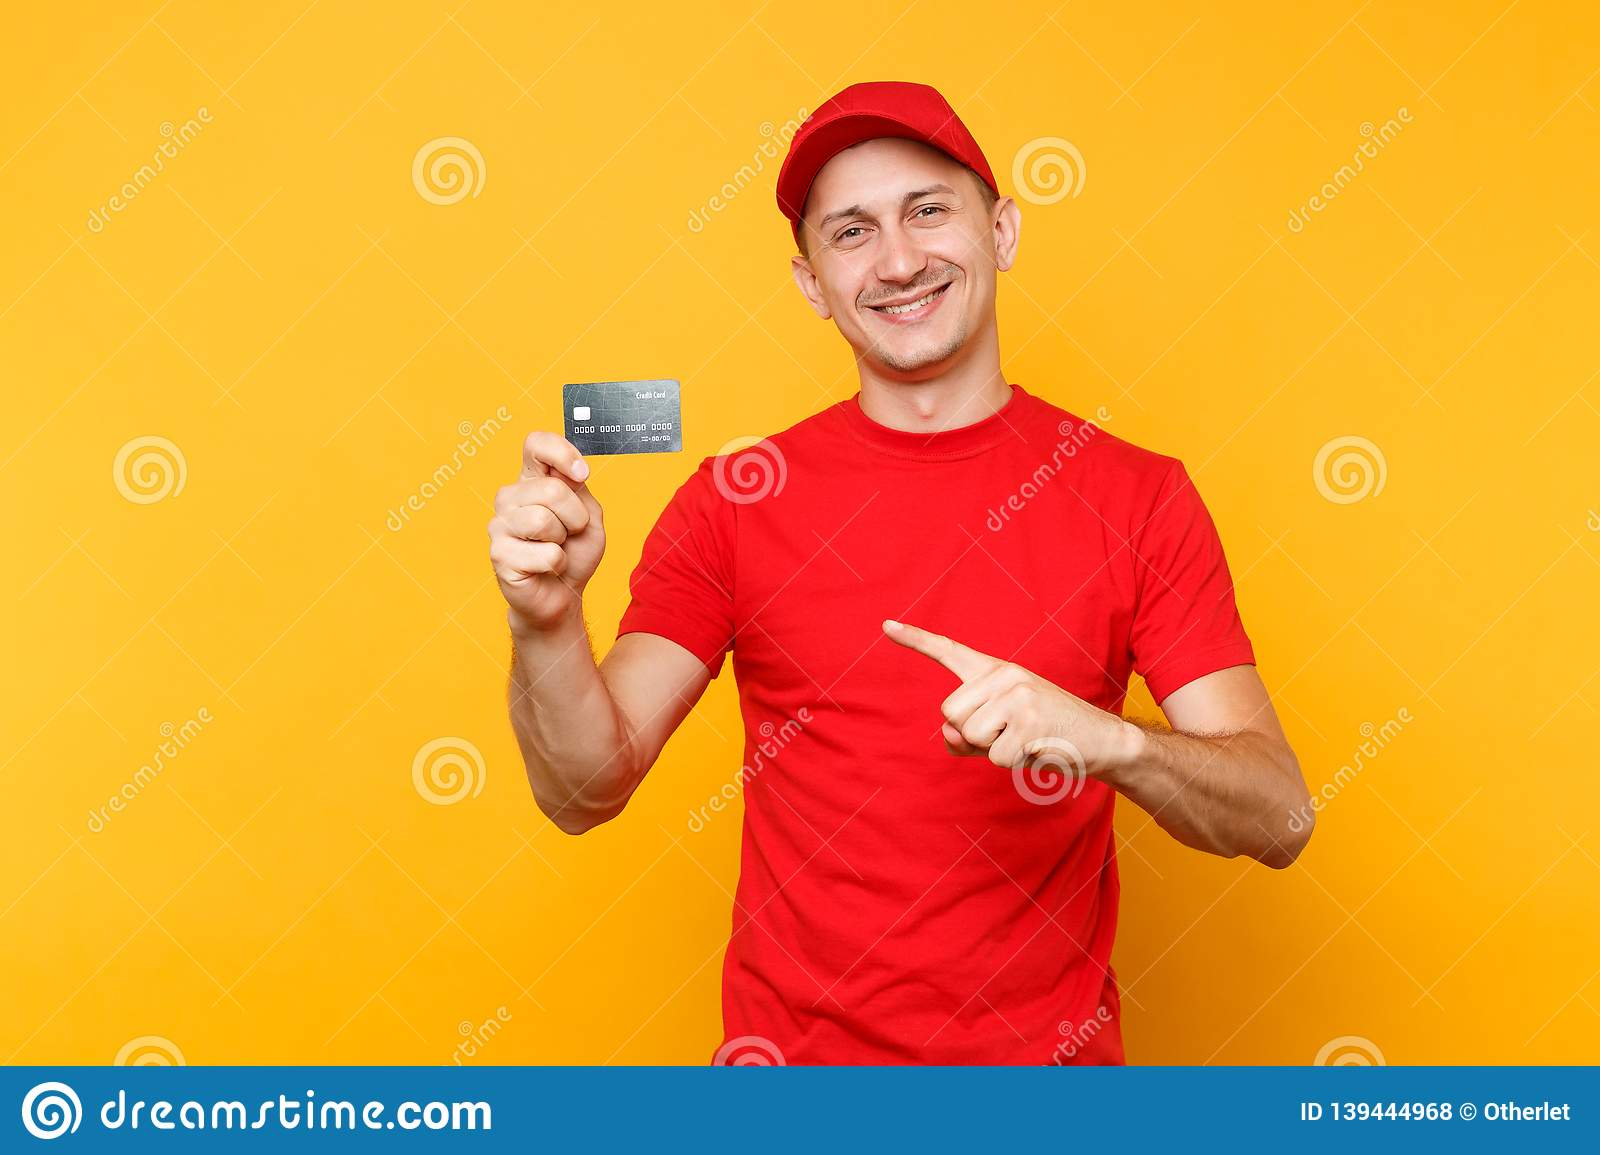 Delivery man in red uniform isolated on yellow orange background. Professional smiling male employee in cap, empty t